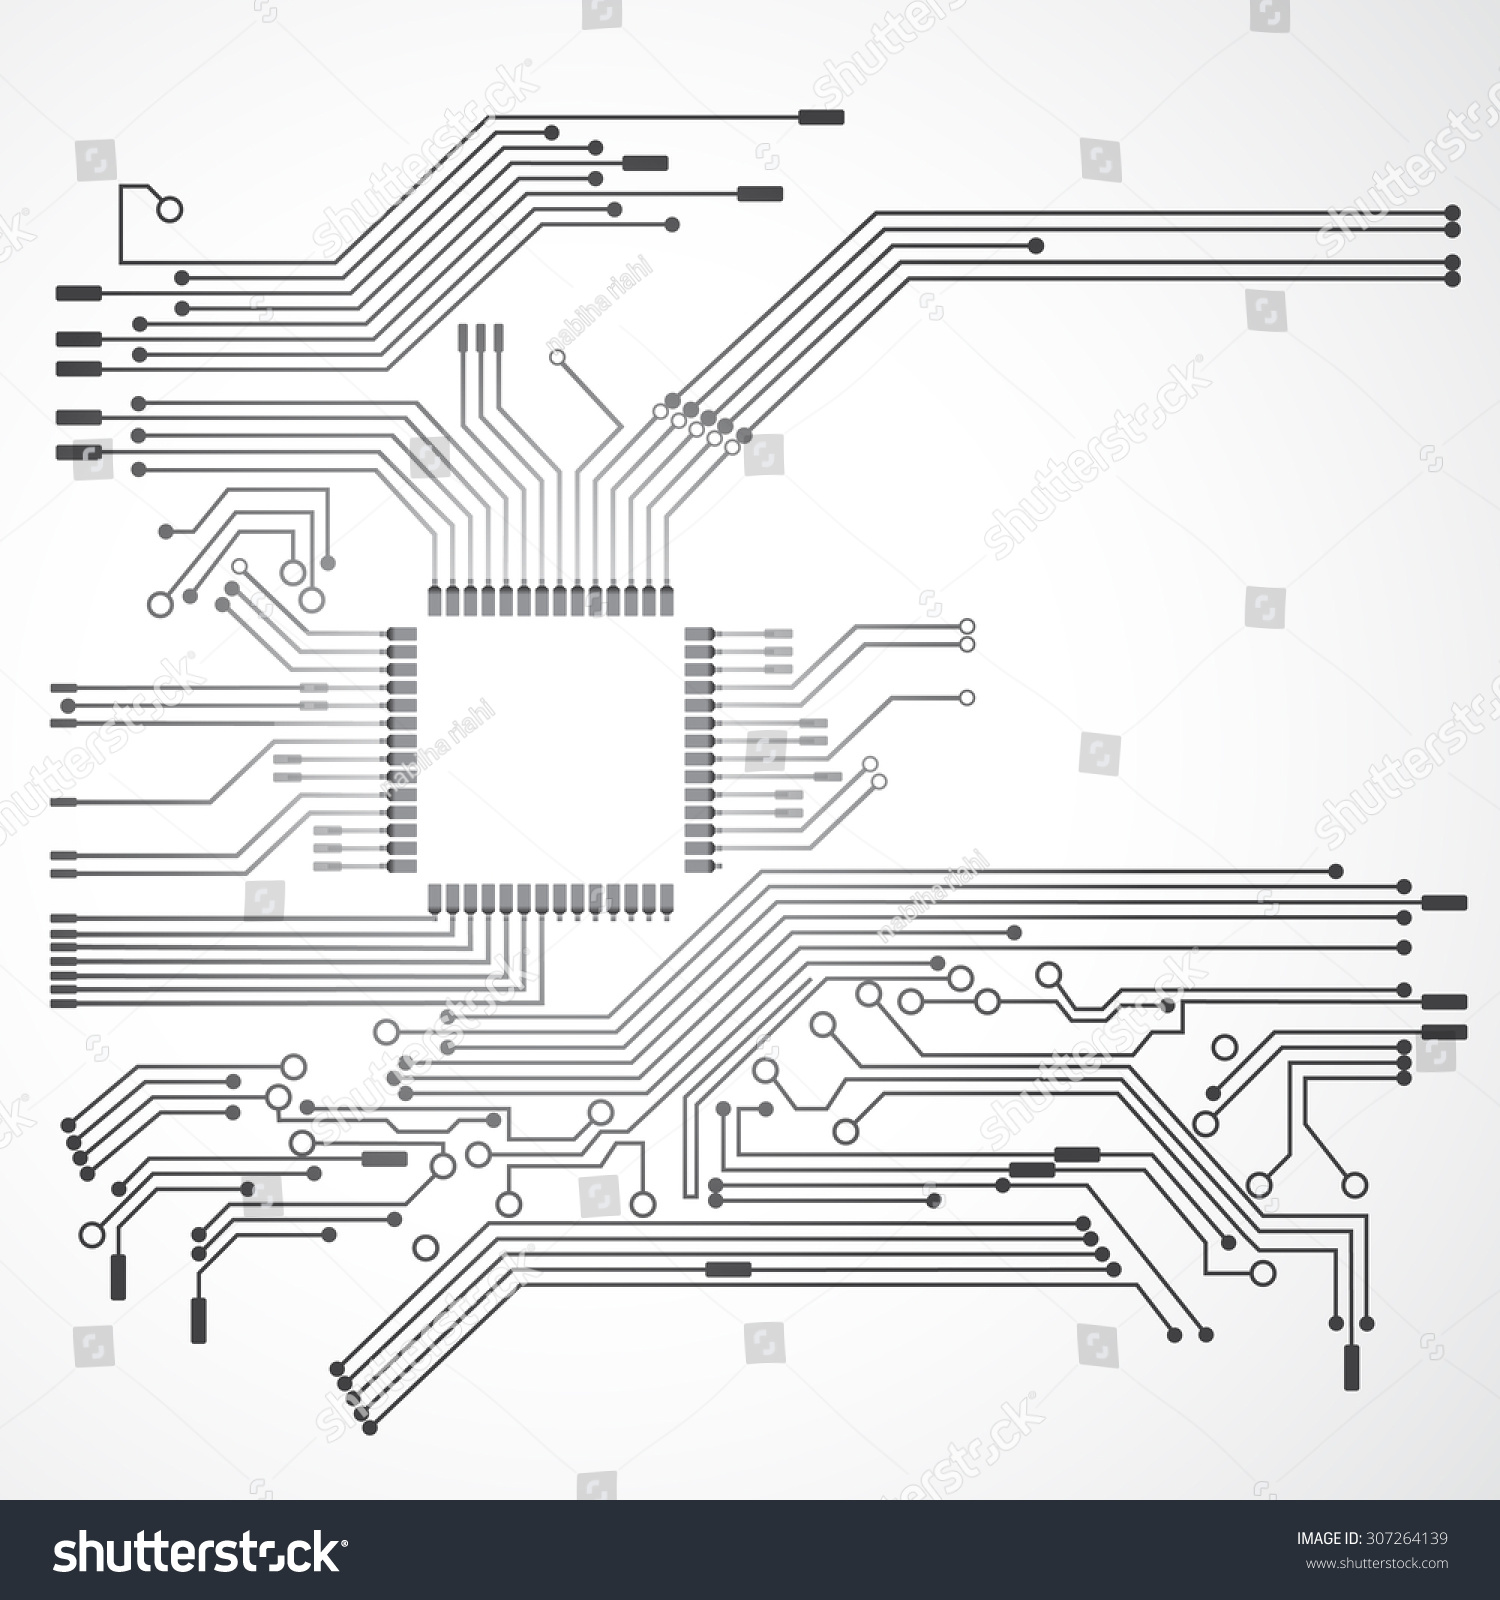 Processor Circuit Electric Digital Concept Stock Vector Royalty Diagram And